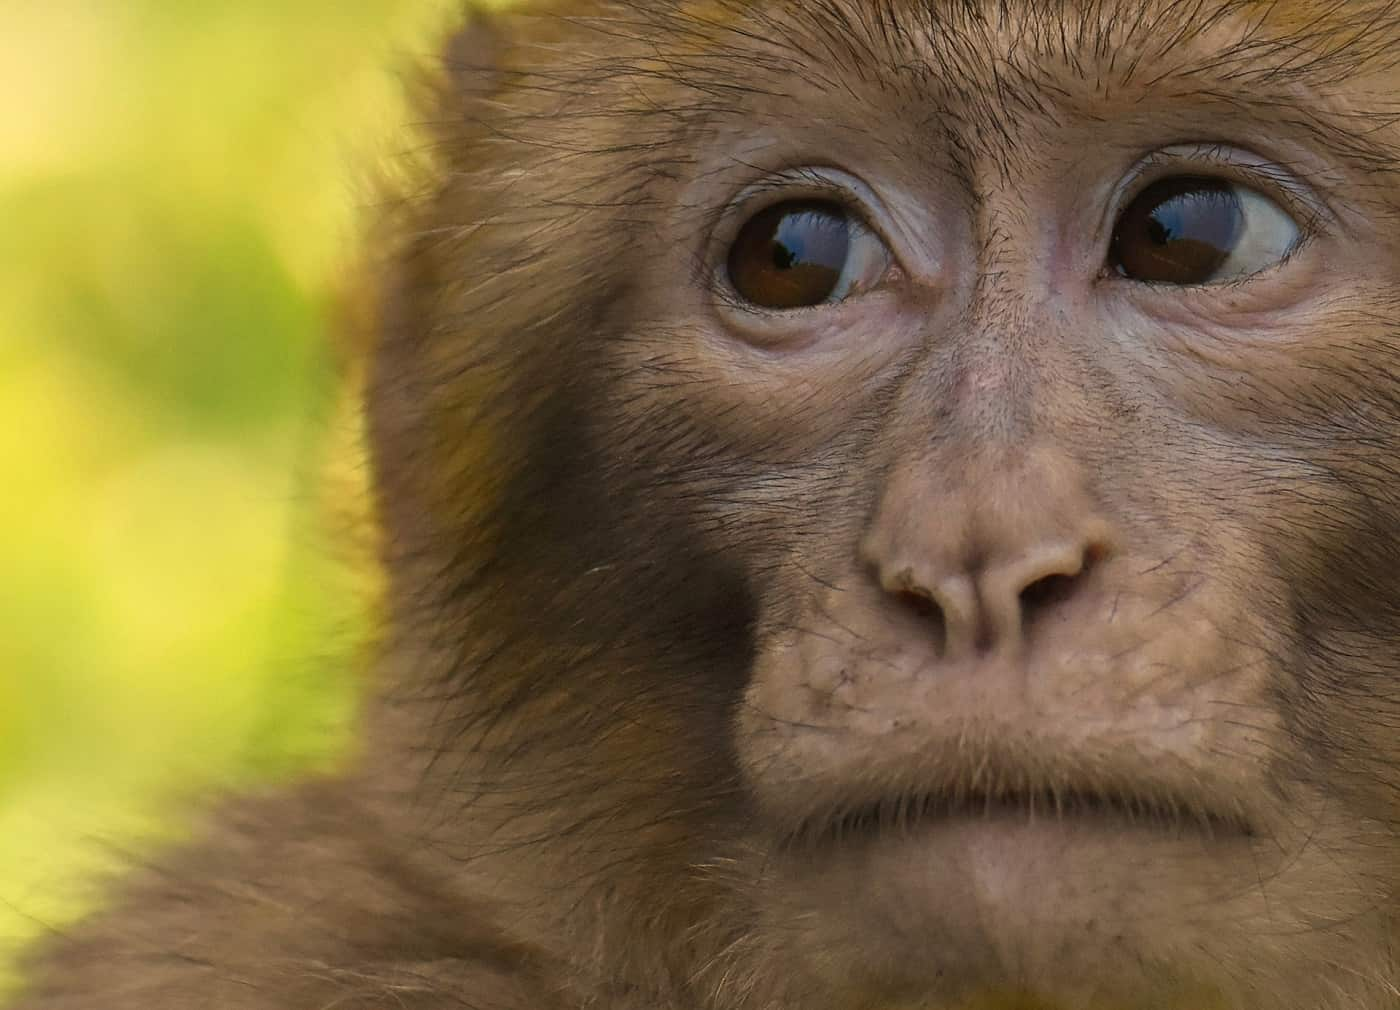 Sad-looking barbary ape - Meditate on your pain